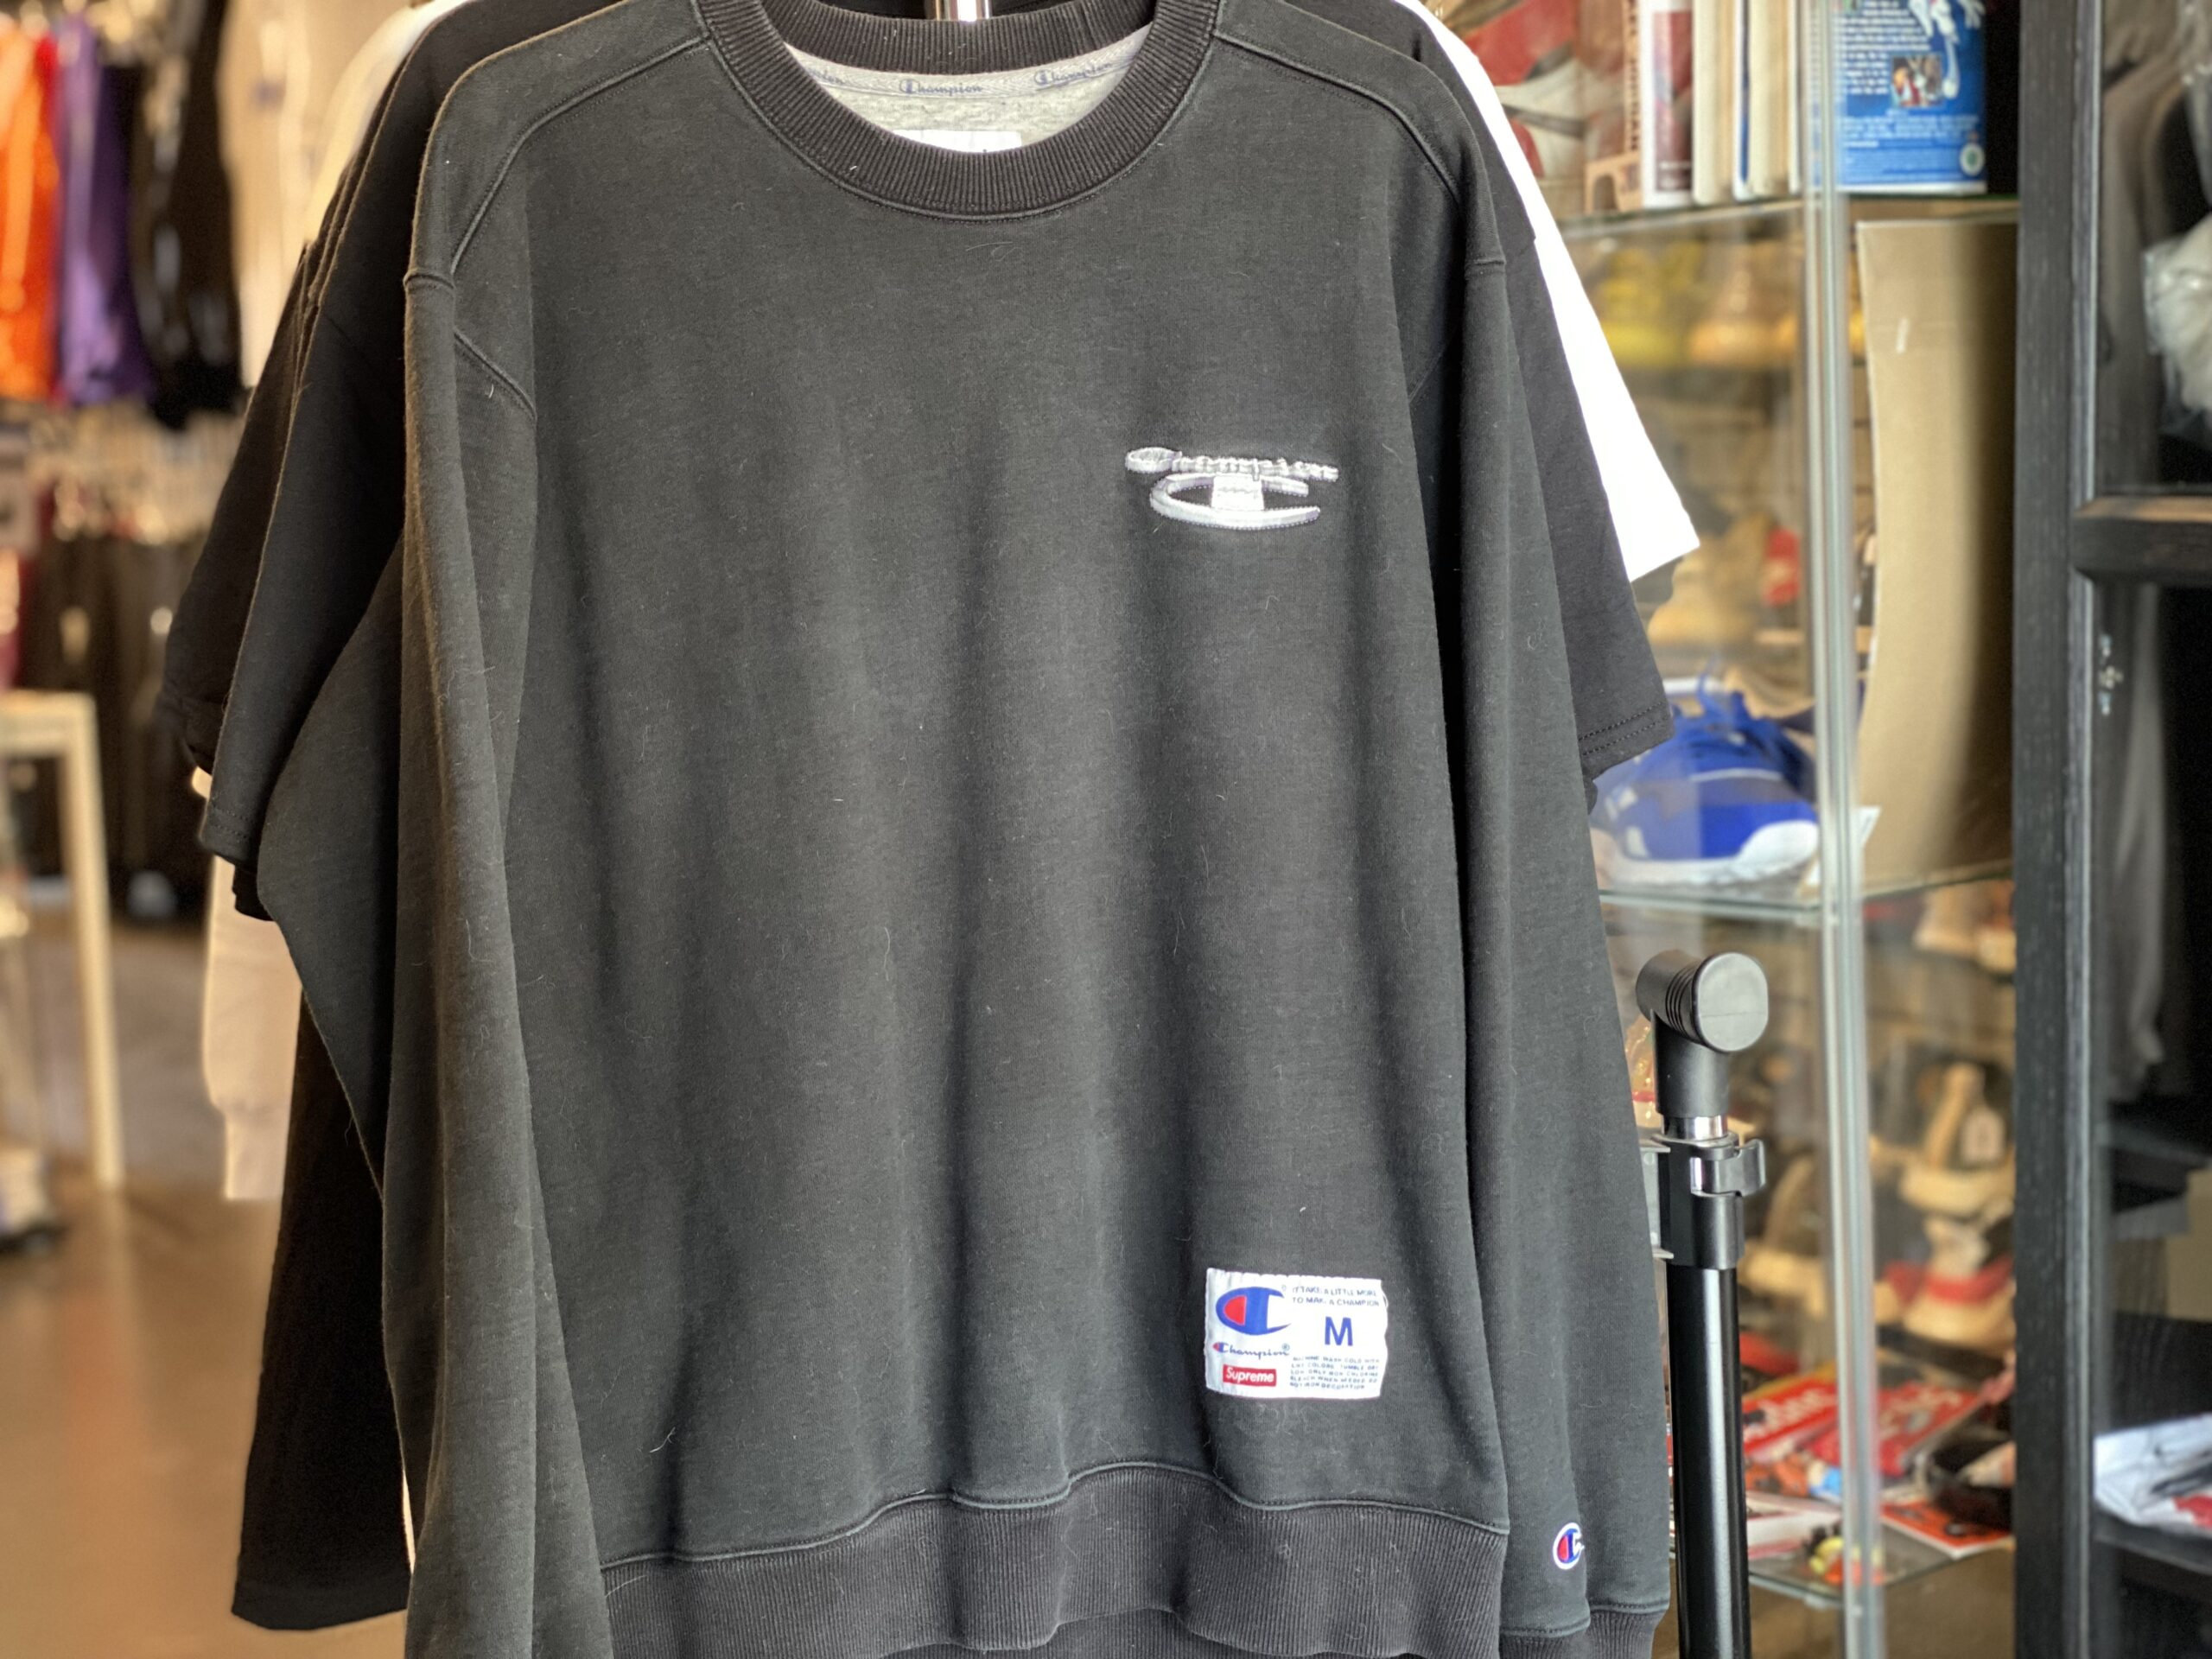 Preowned Supreme x Champion Long Sleeve Black Size M